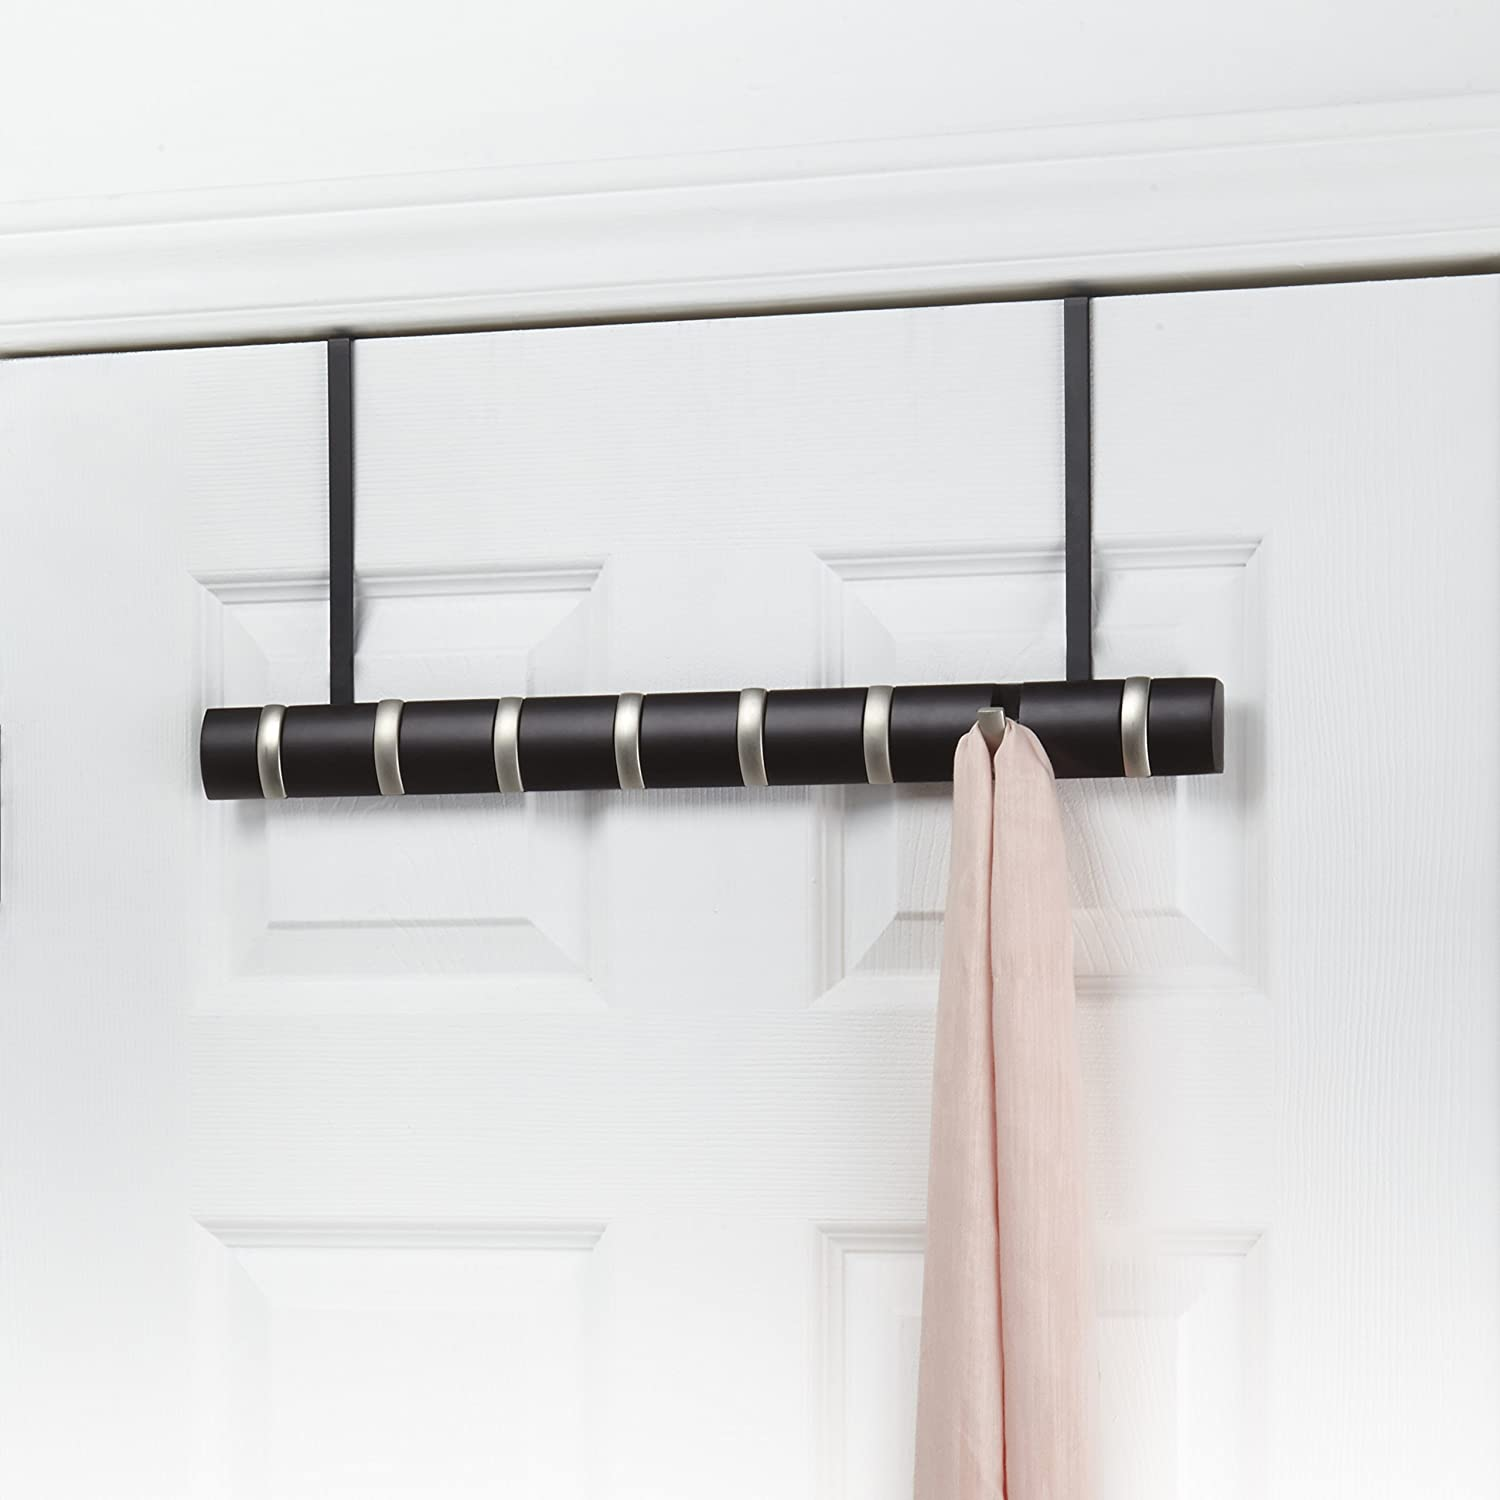 Umbra Flip Wall Mounted Hook System With 5 Hooks, Natural: Amazon.co.uk:  Kitchen U0026 Home